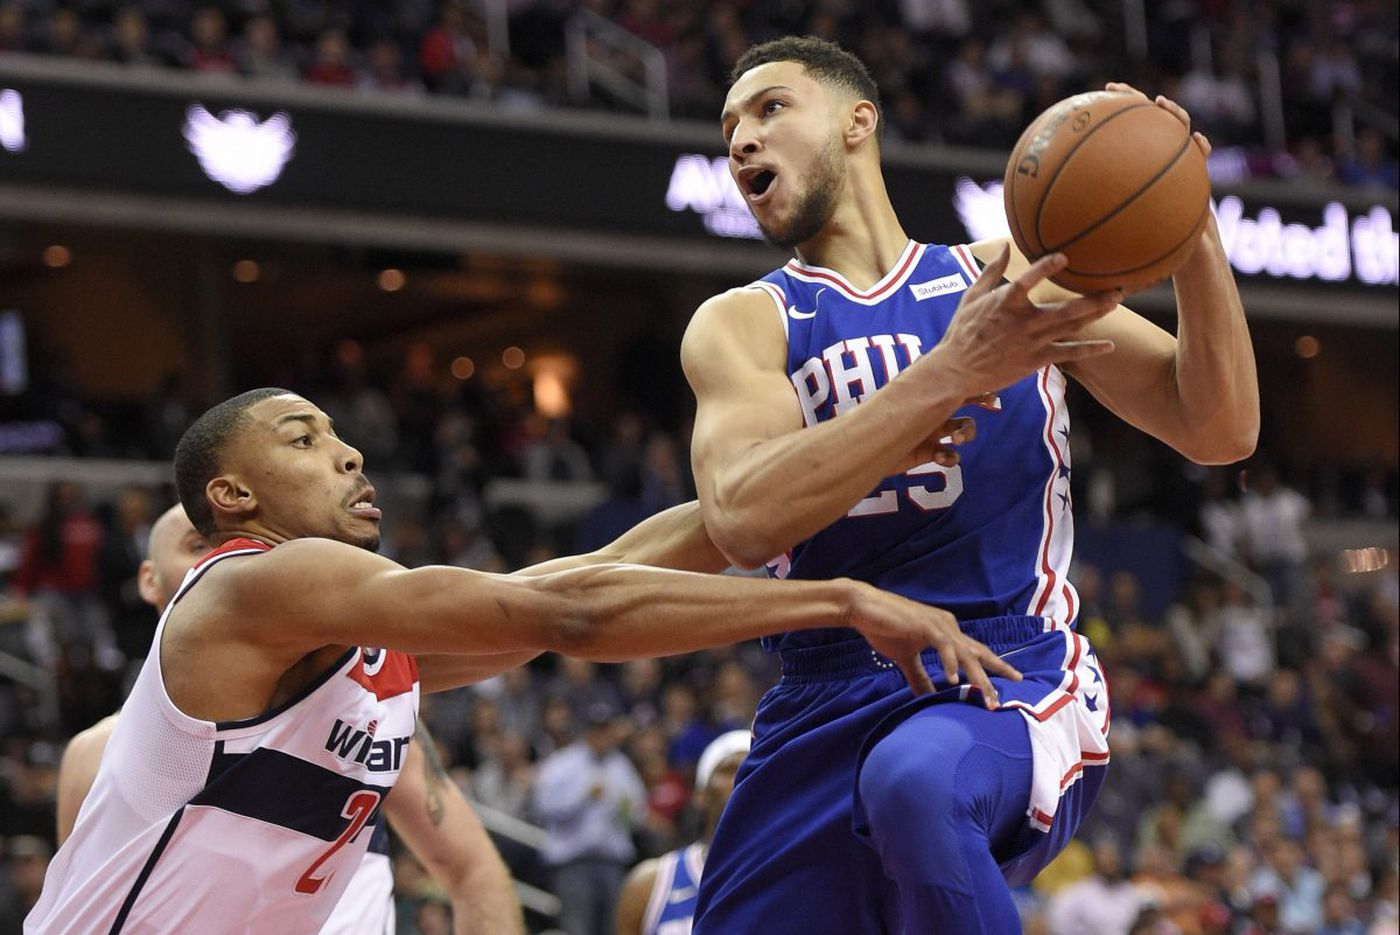 Pick your poison: Some visual evidence of Ben Simmons' impact | David Murphy